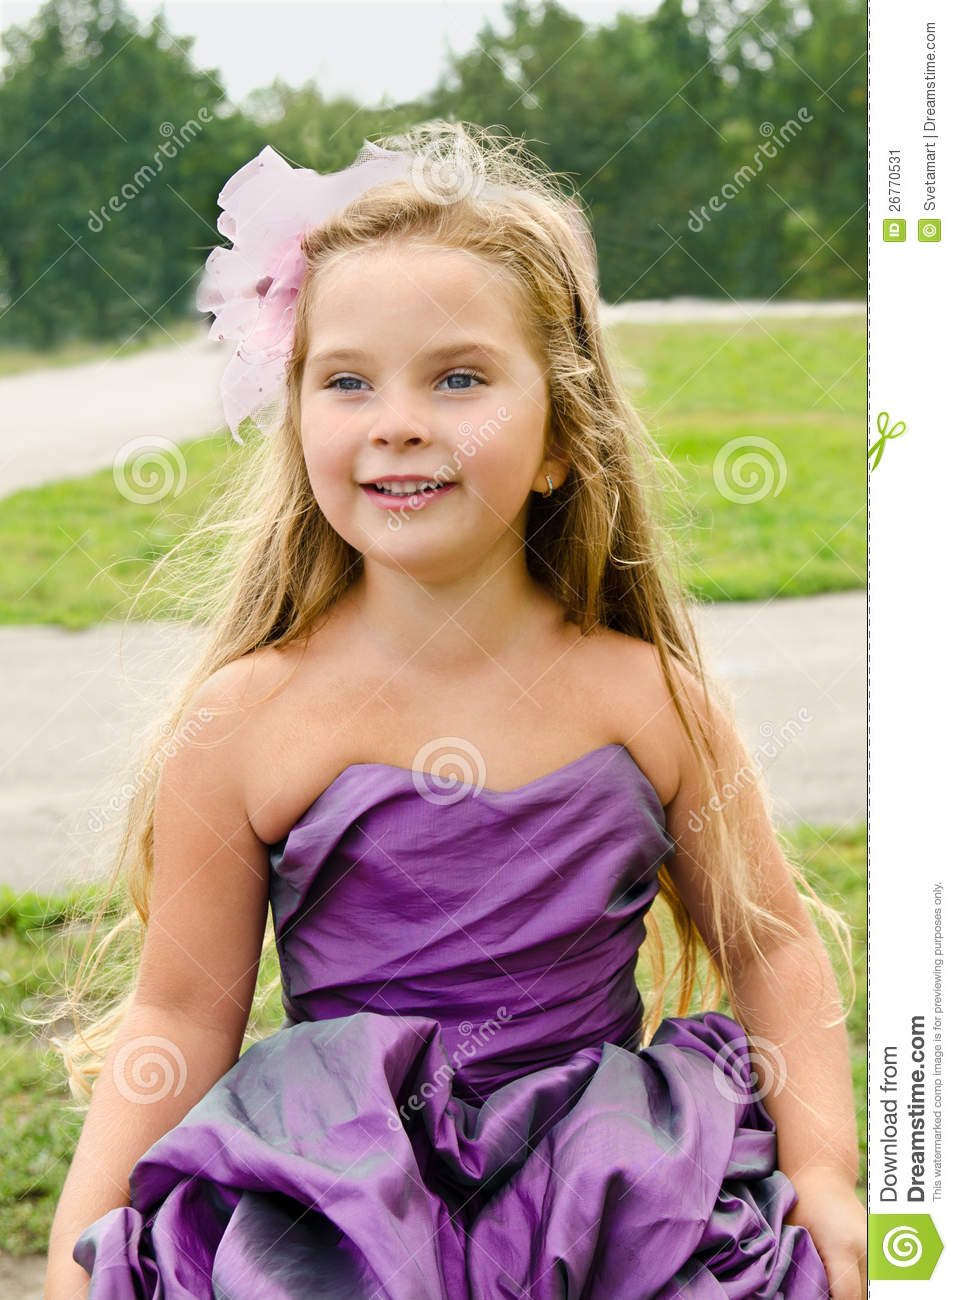 Portrait Of Cute Little Girl In Princess Dress Stock Image